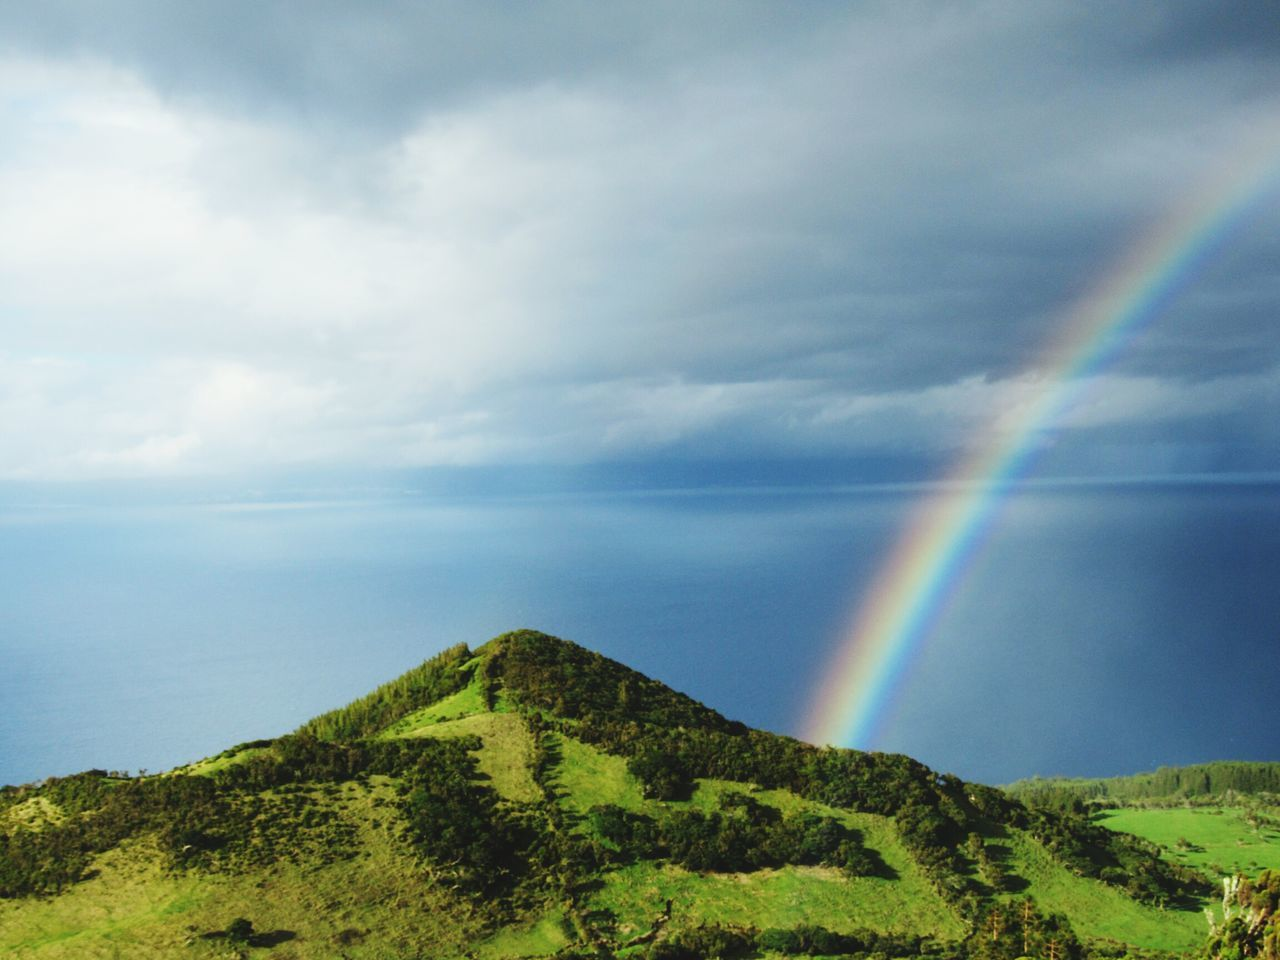 Pico Azores Mountain beautiful Landscape No People Rain Nature Cloud - Sky Scenics Outdoors Tree Agriculture Day Sky Beauty In Nature